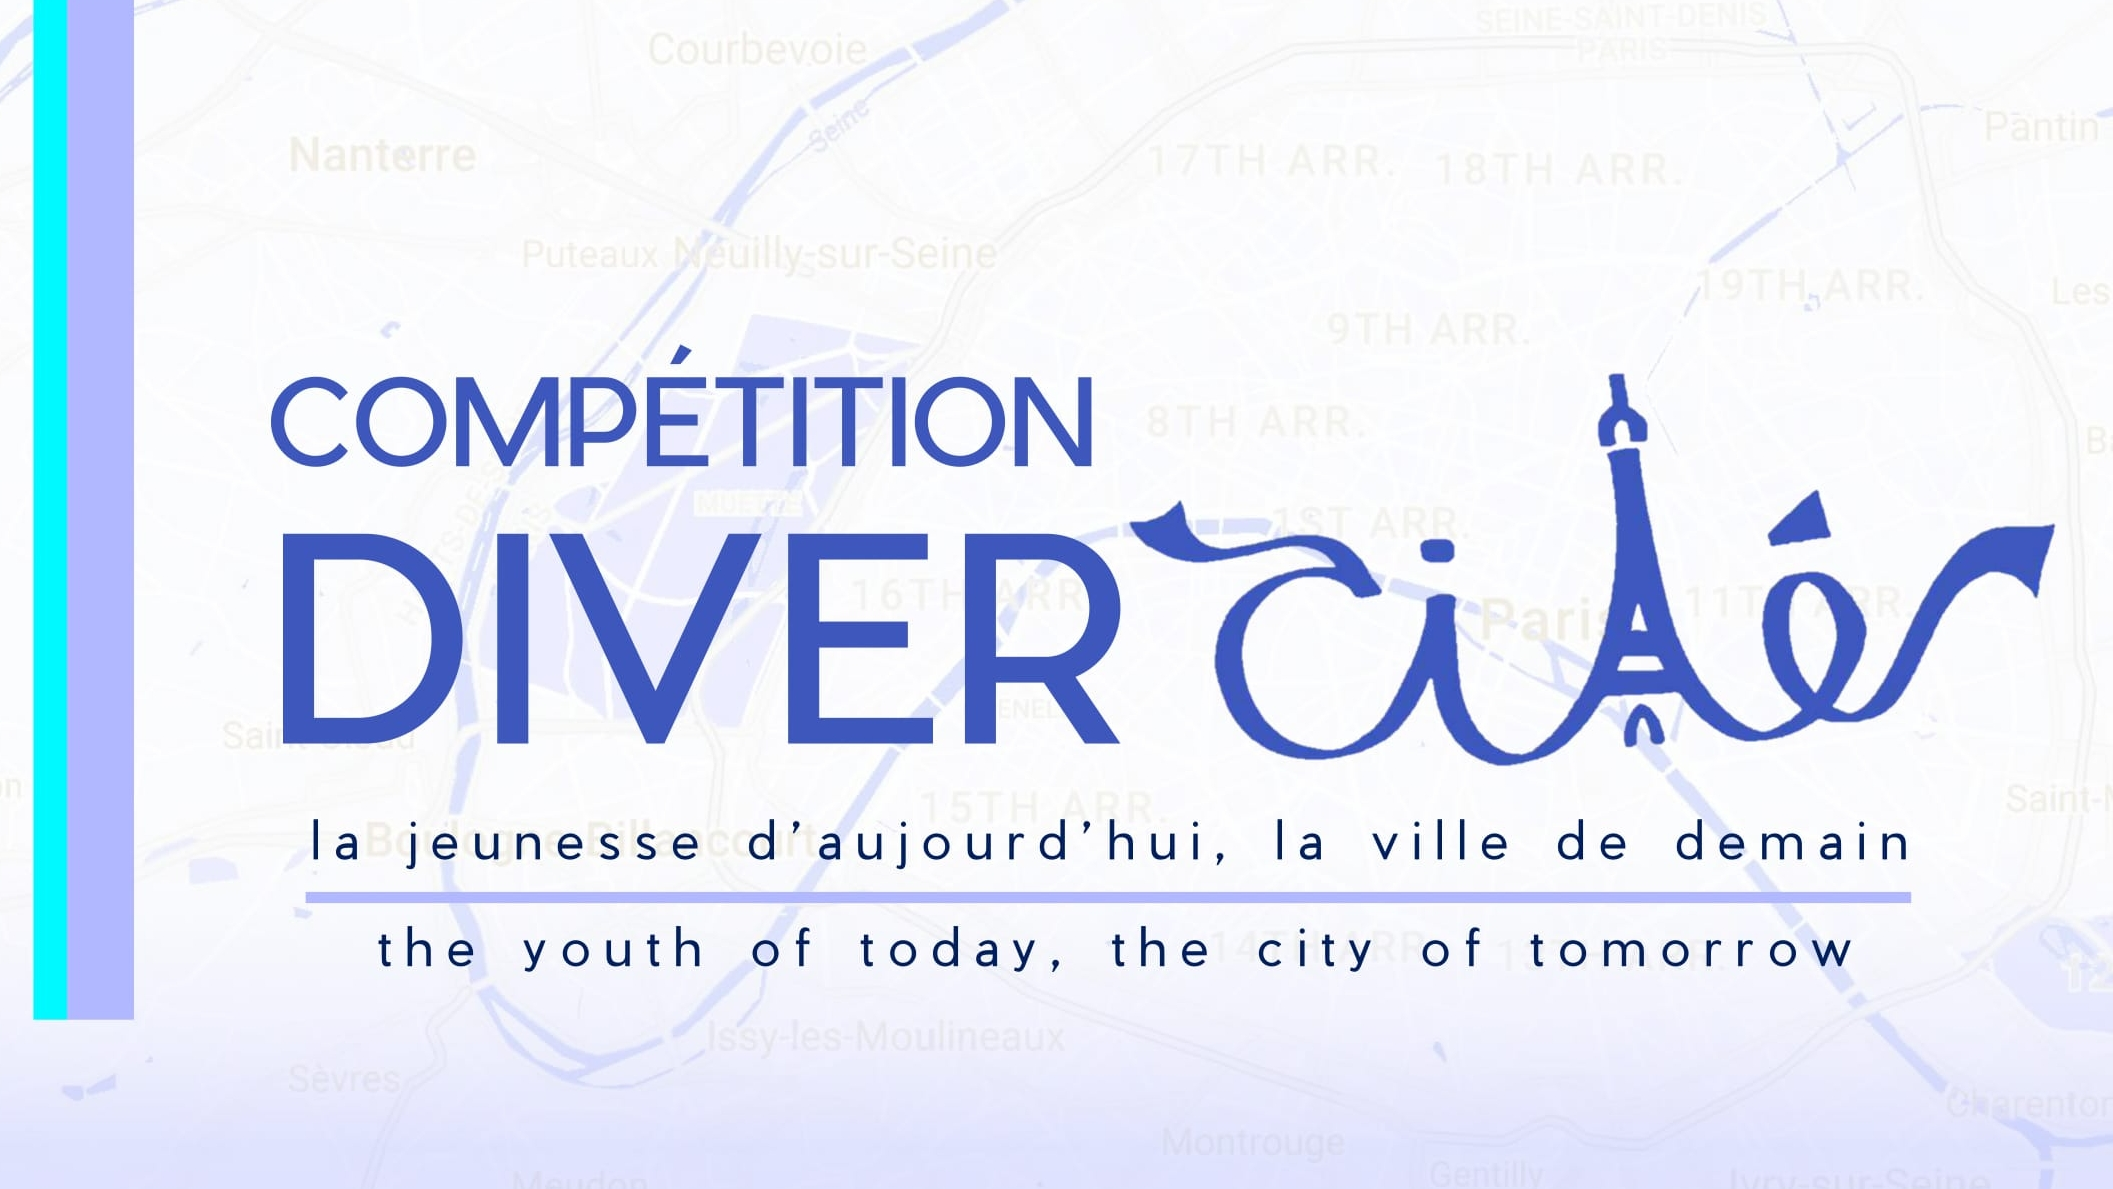 Competition Divercite-1.jpg